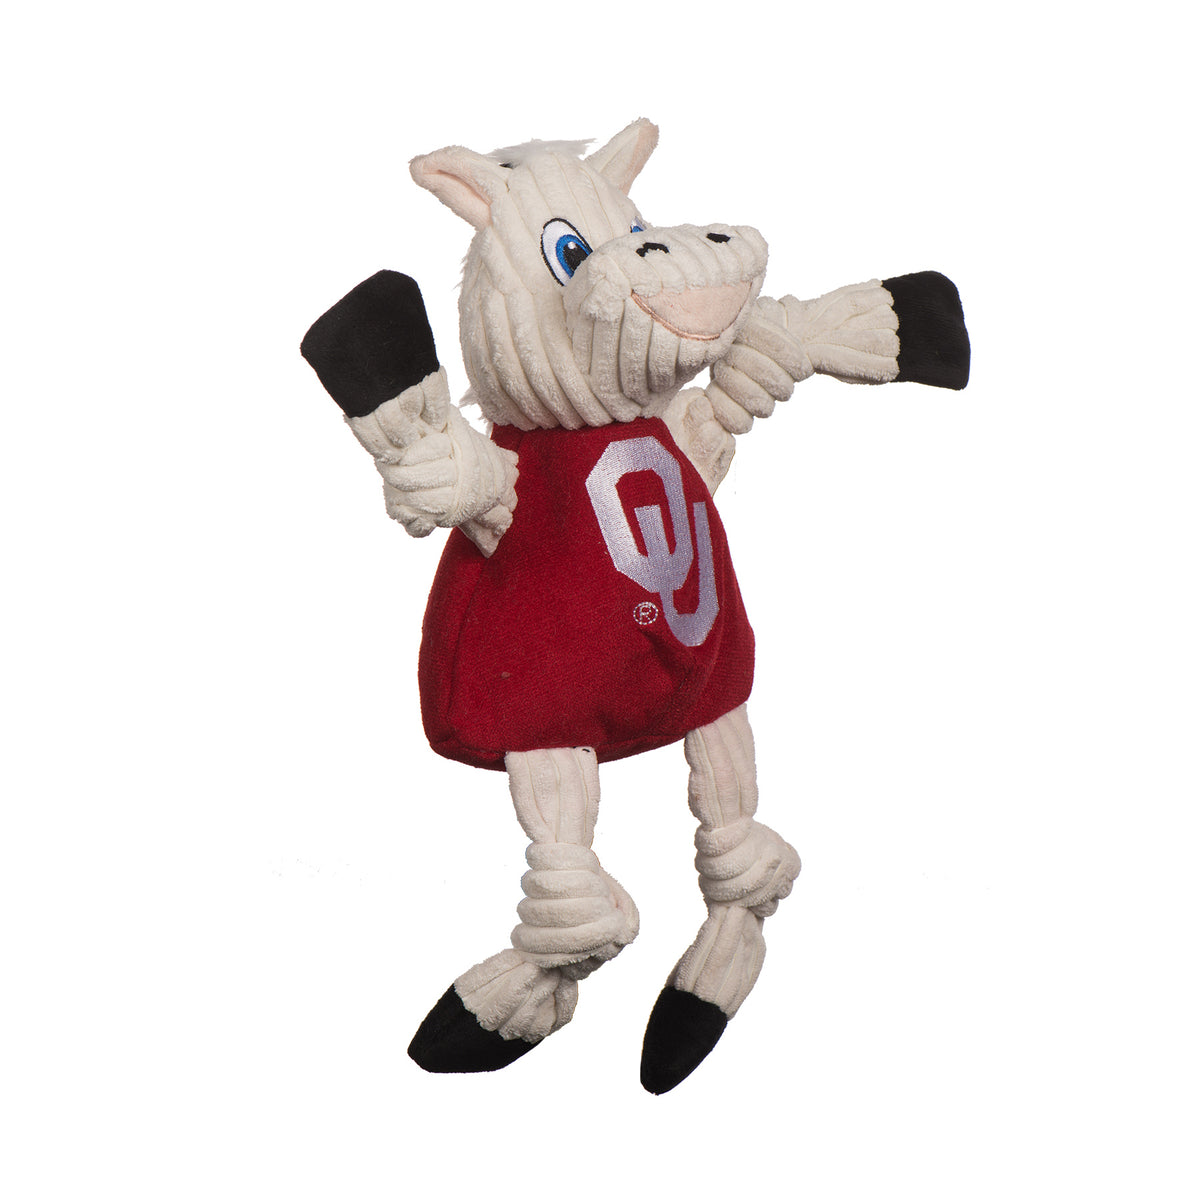 Oklahoma (U of) Sooner Knottie™